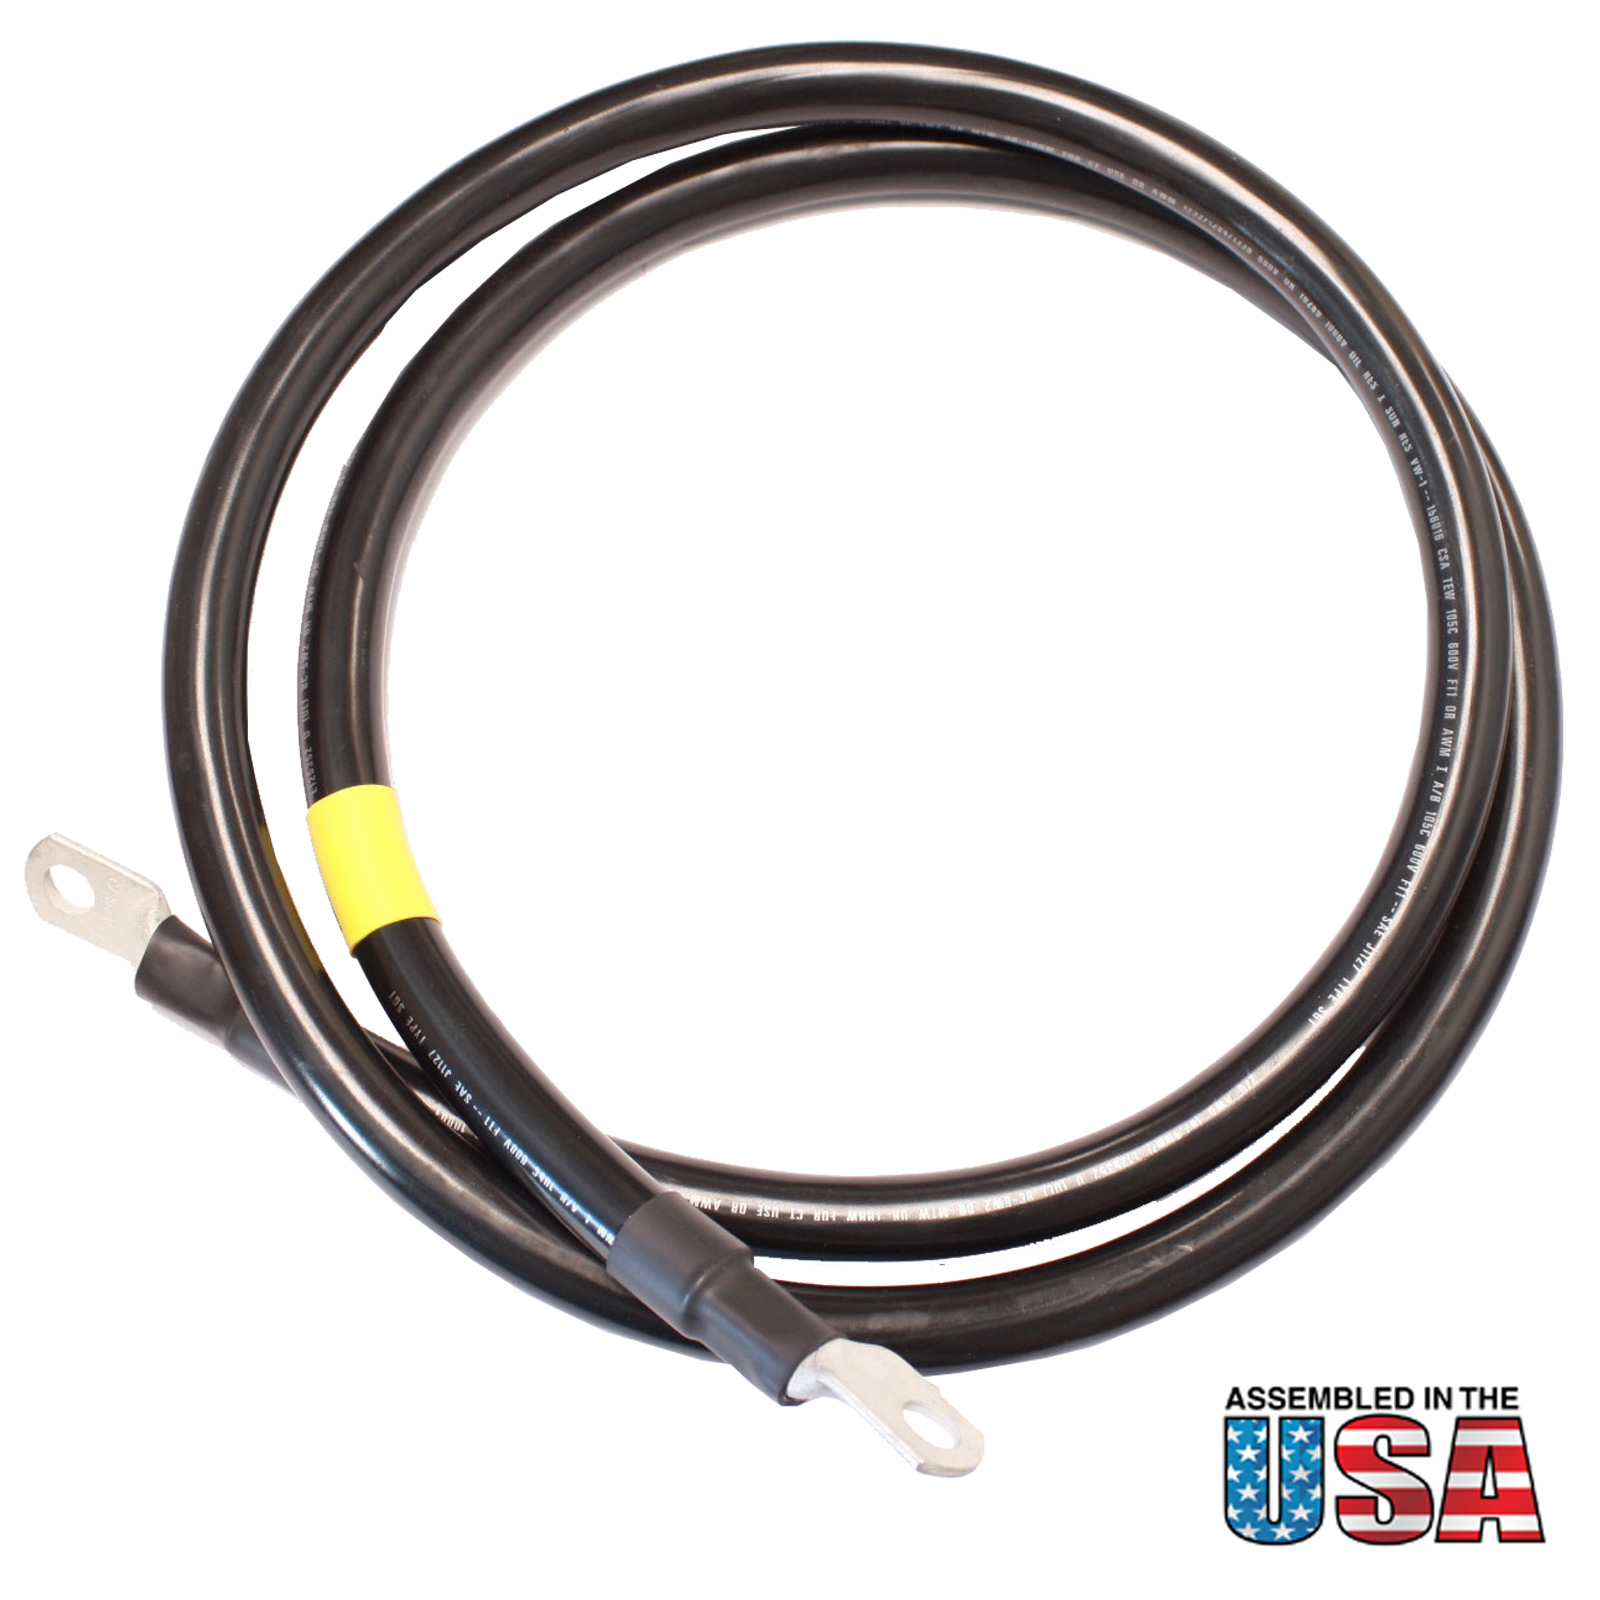 10 Battery Cable : Awg black battery interconnect cable ft quot lugs